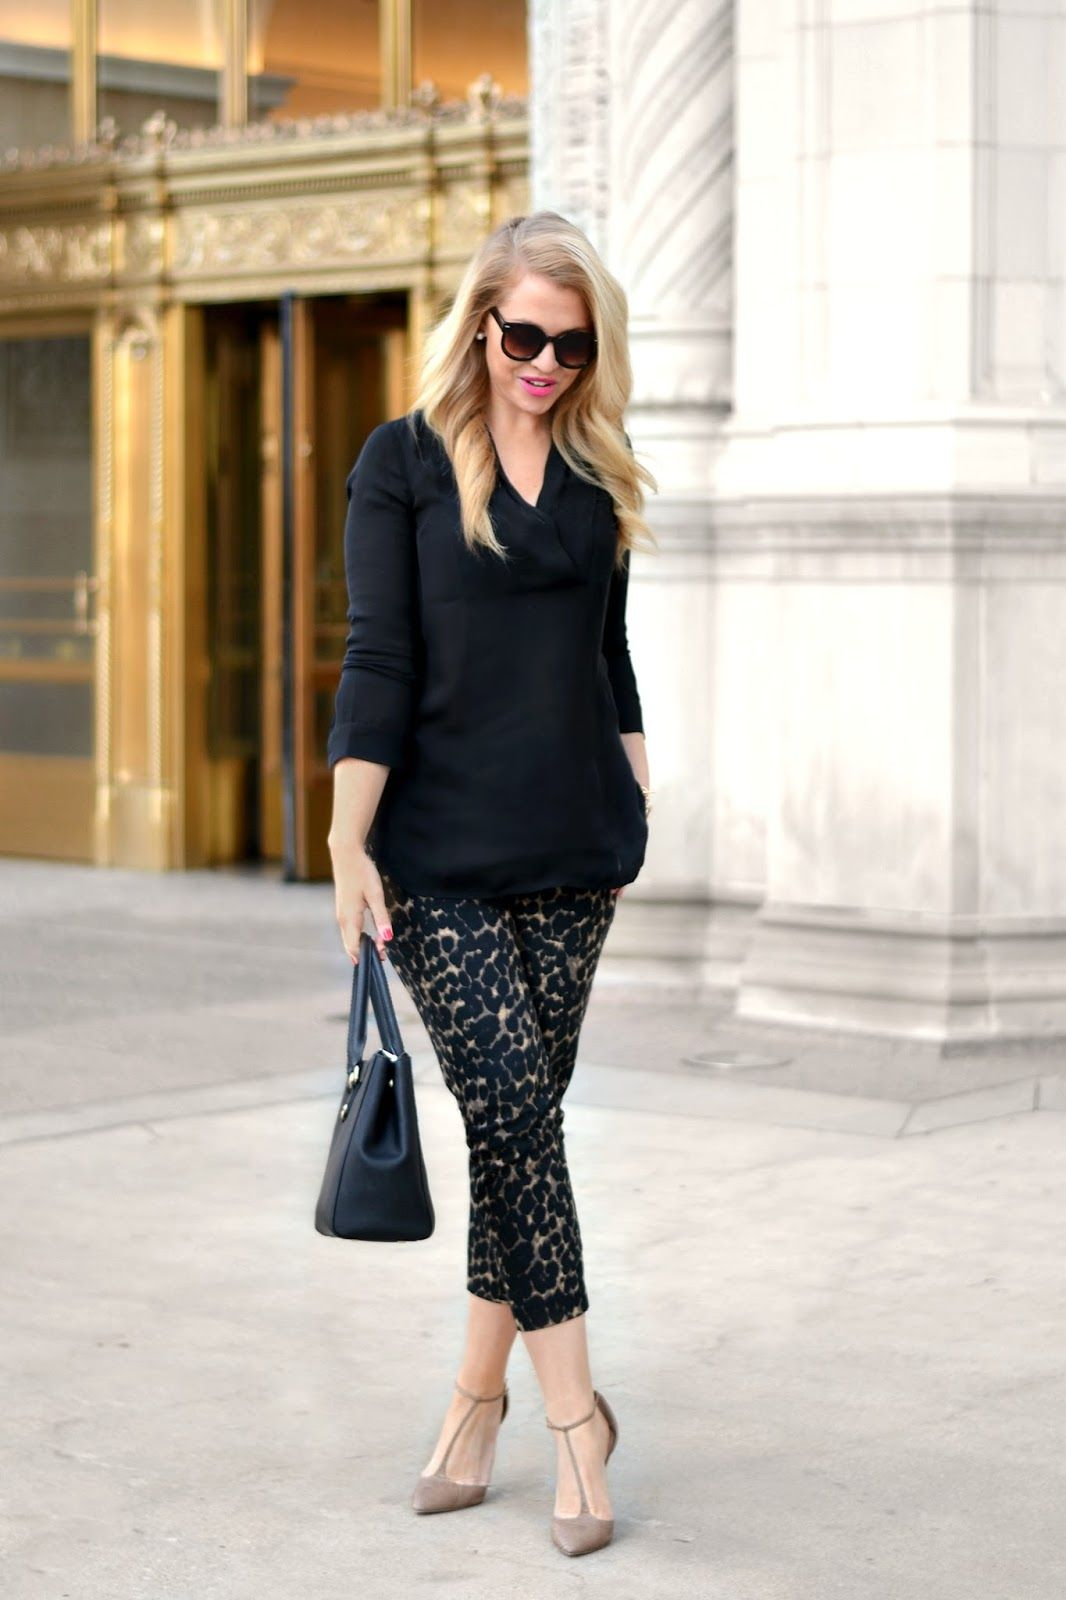 Silk blouse + leopard pants.